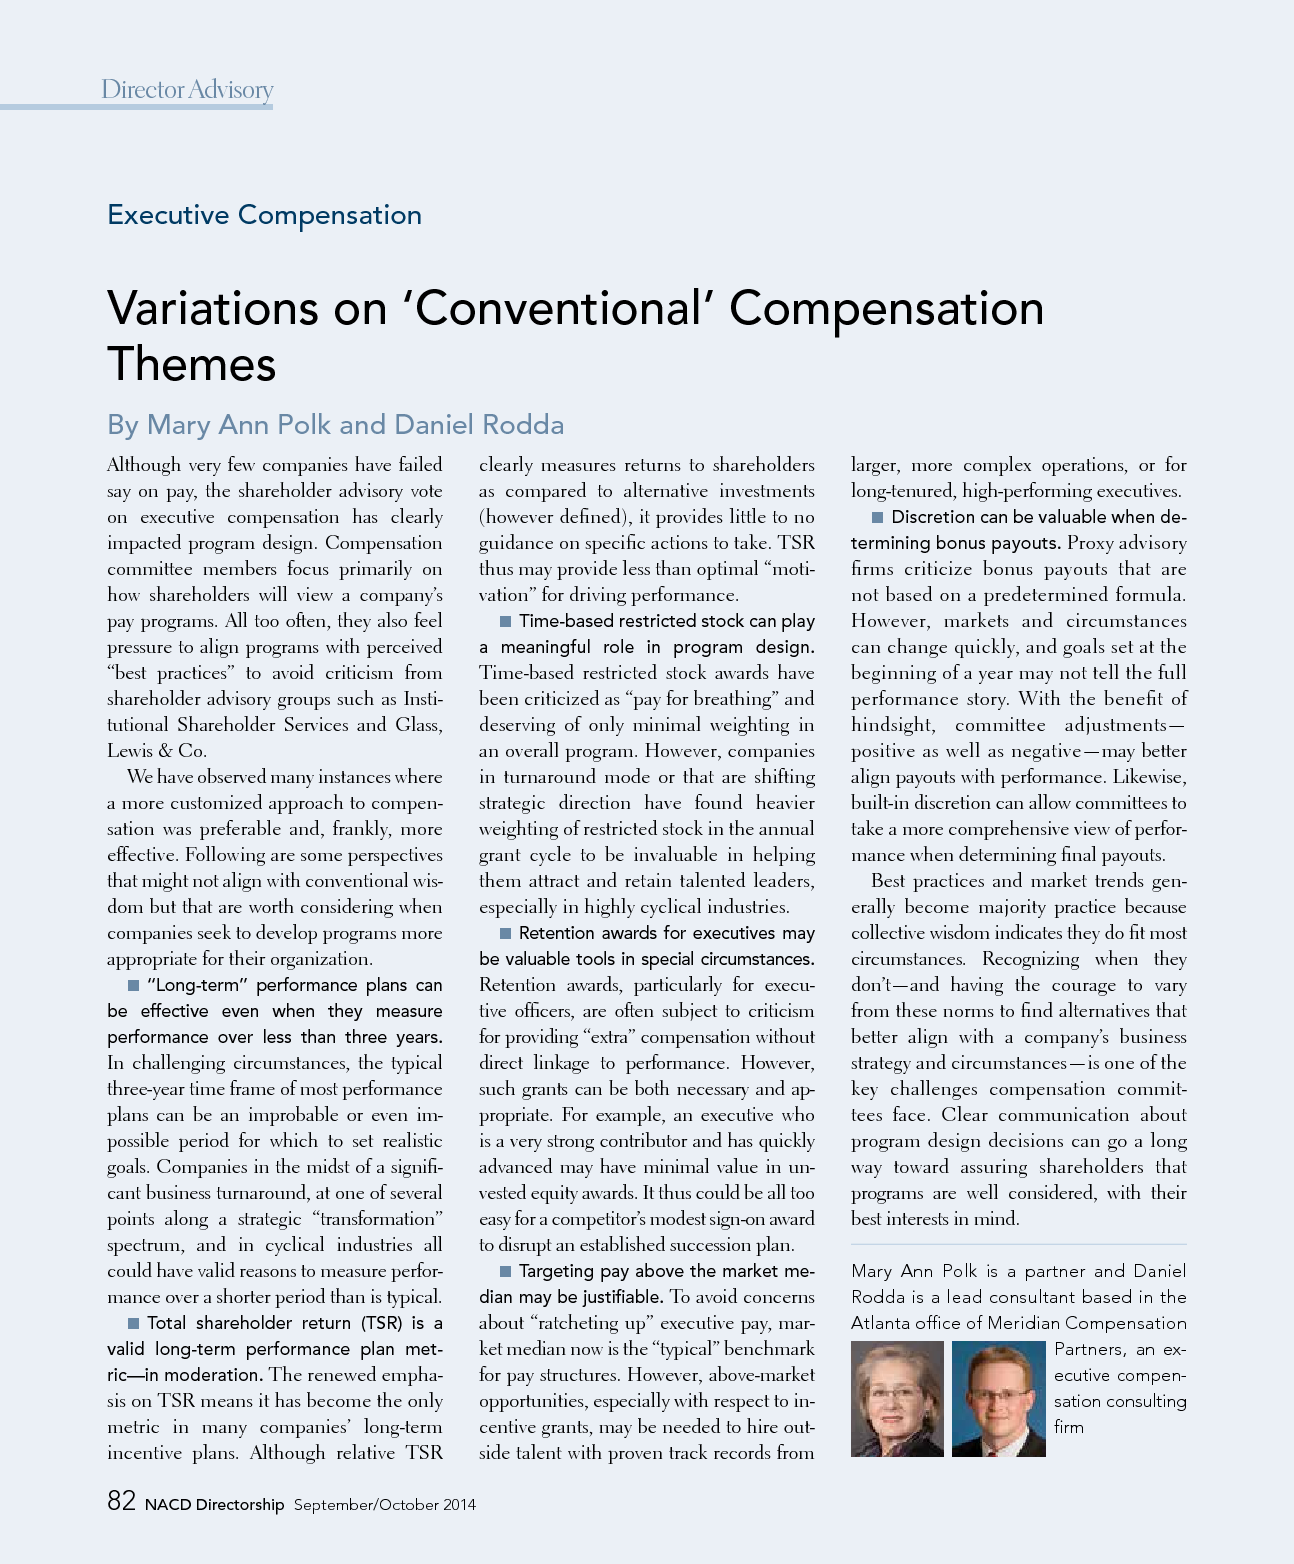 """Variations on """"Conventional"""" Compensation Themes (PDF)"""